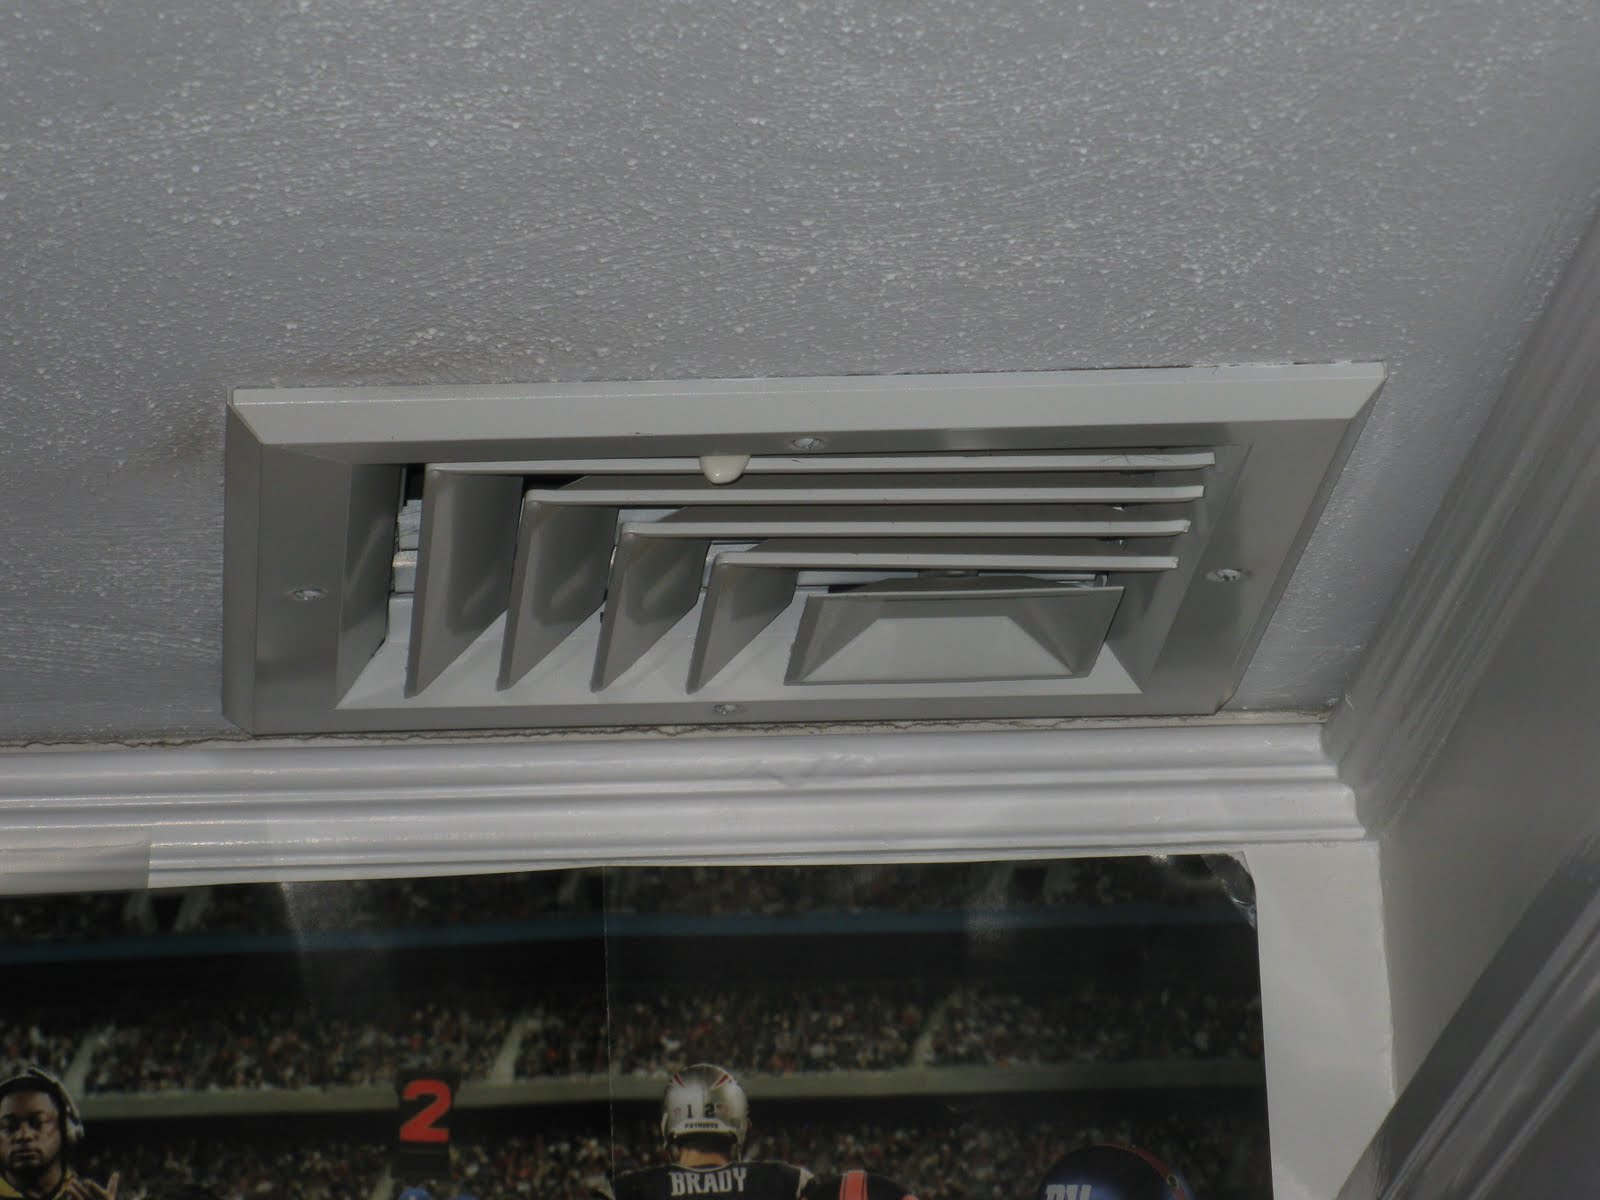 How to cut base molding around wall vent - The Vent One Below Is Located In The Middle Of The Room If You Click On The Picture It Will Enlarge The View The 3 Crown Molding The Owner Chose Will Not